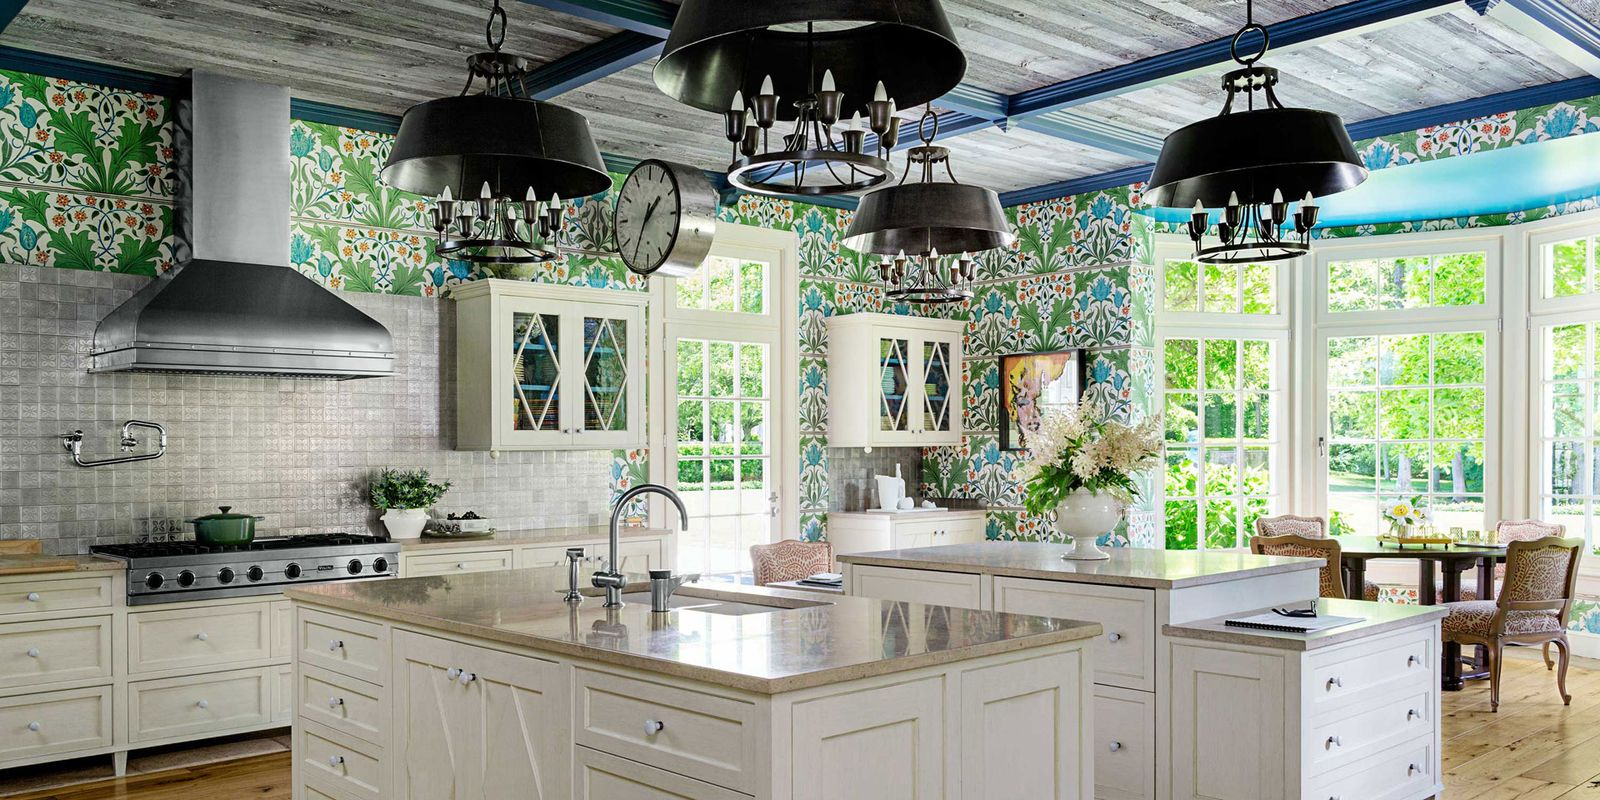 William morris wallpaper kitchen stephen sills kitchen for Wallpapered kitchen ideas